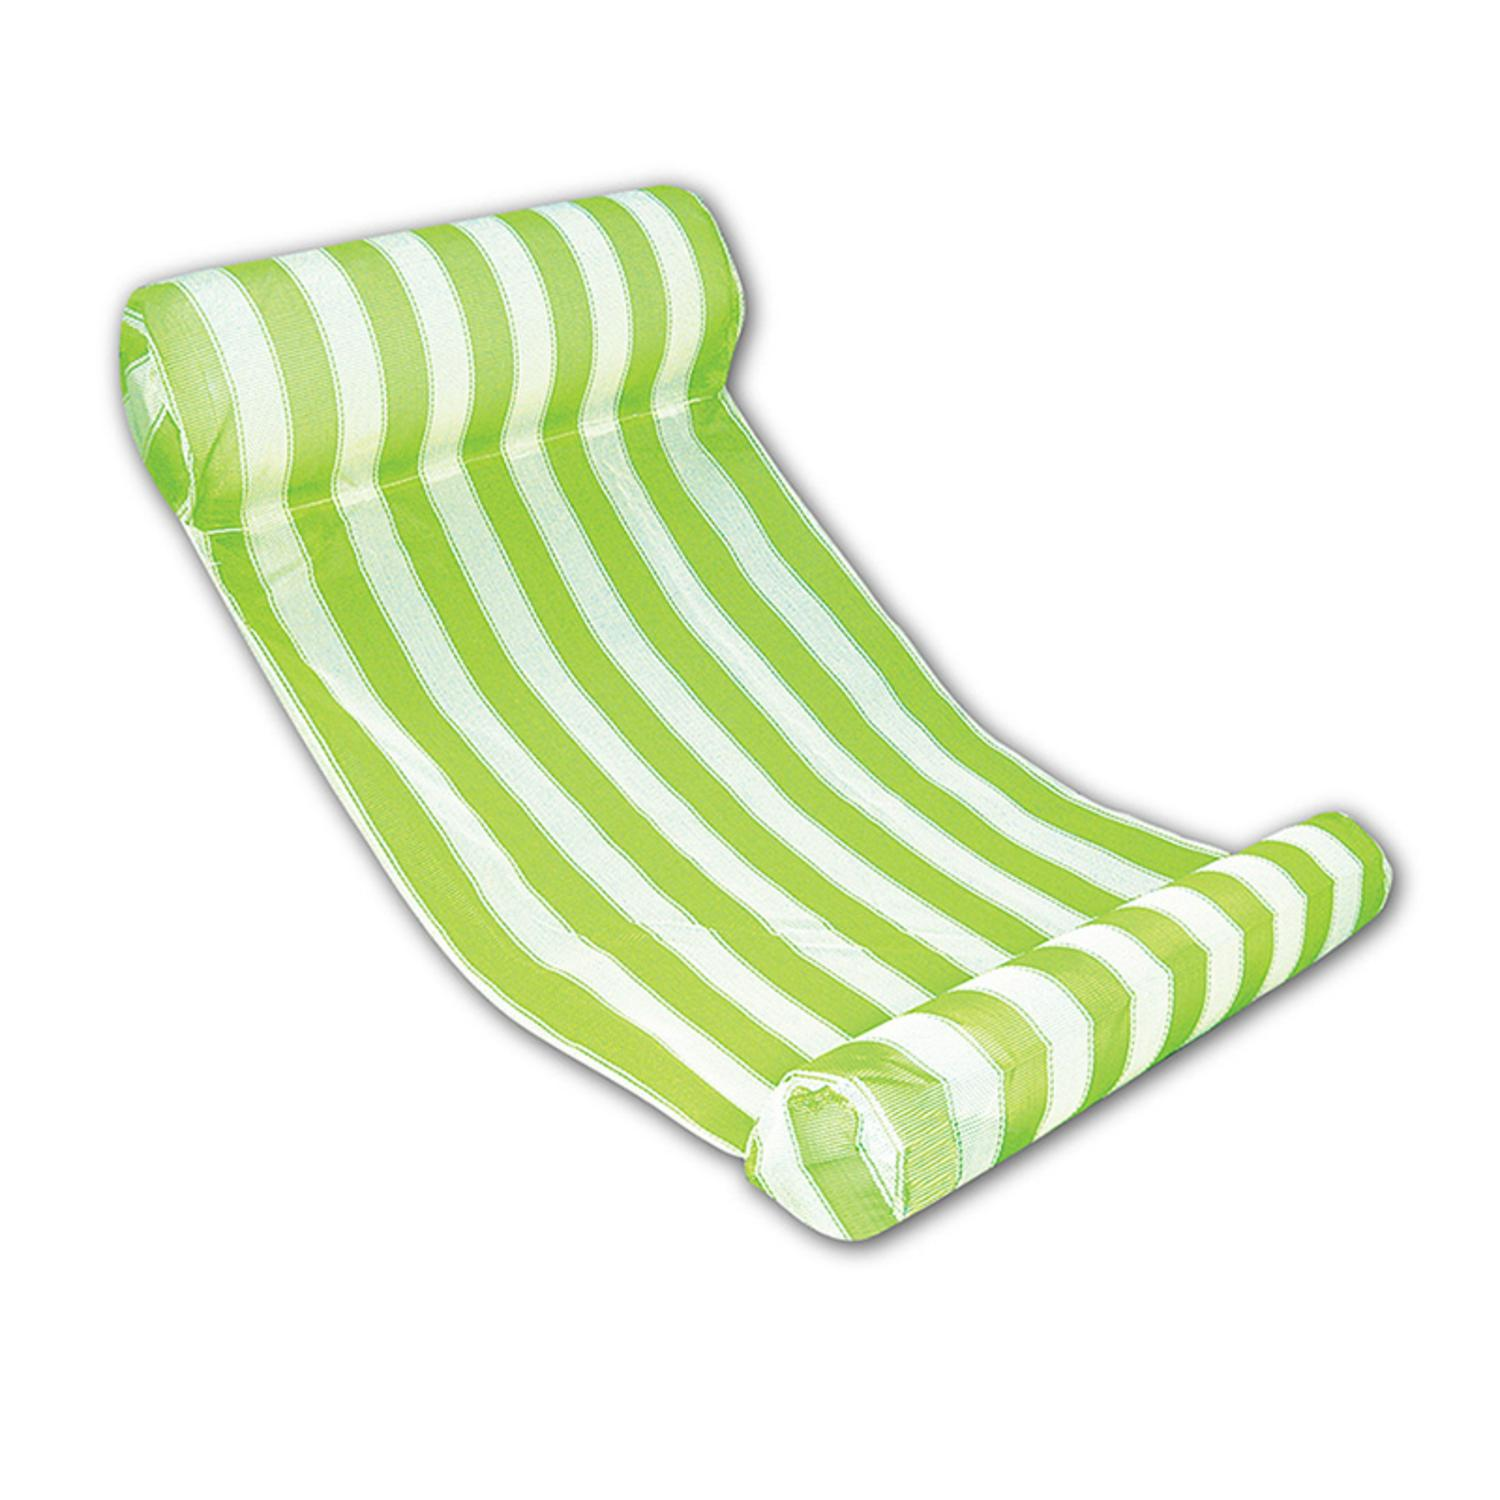 "51.75"" Green and White Striped Water Hammock Swimming Pool Lounger"